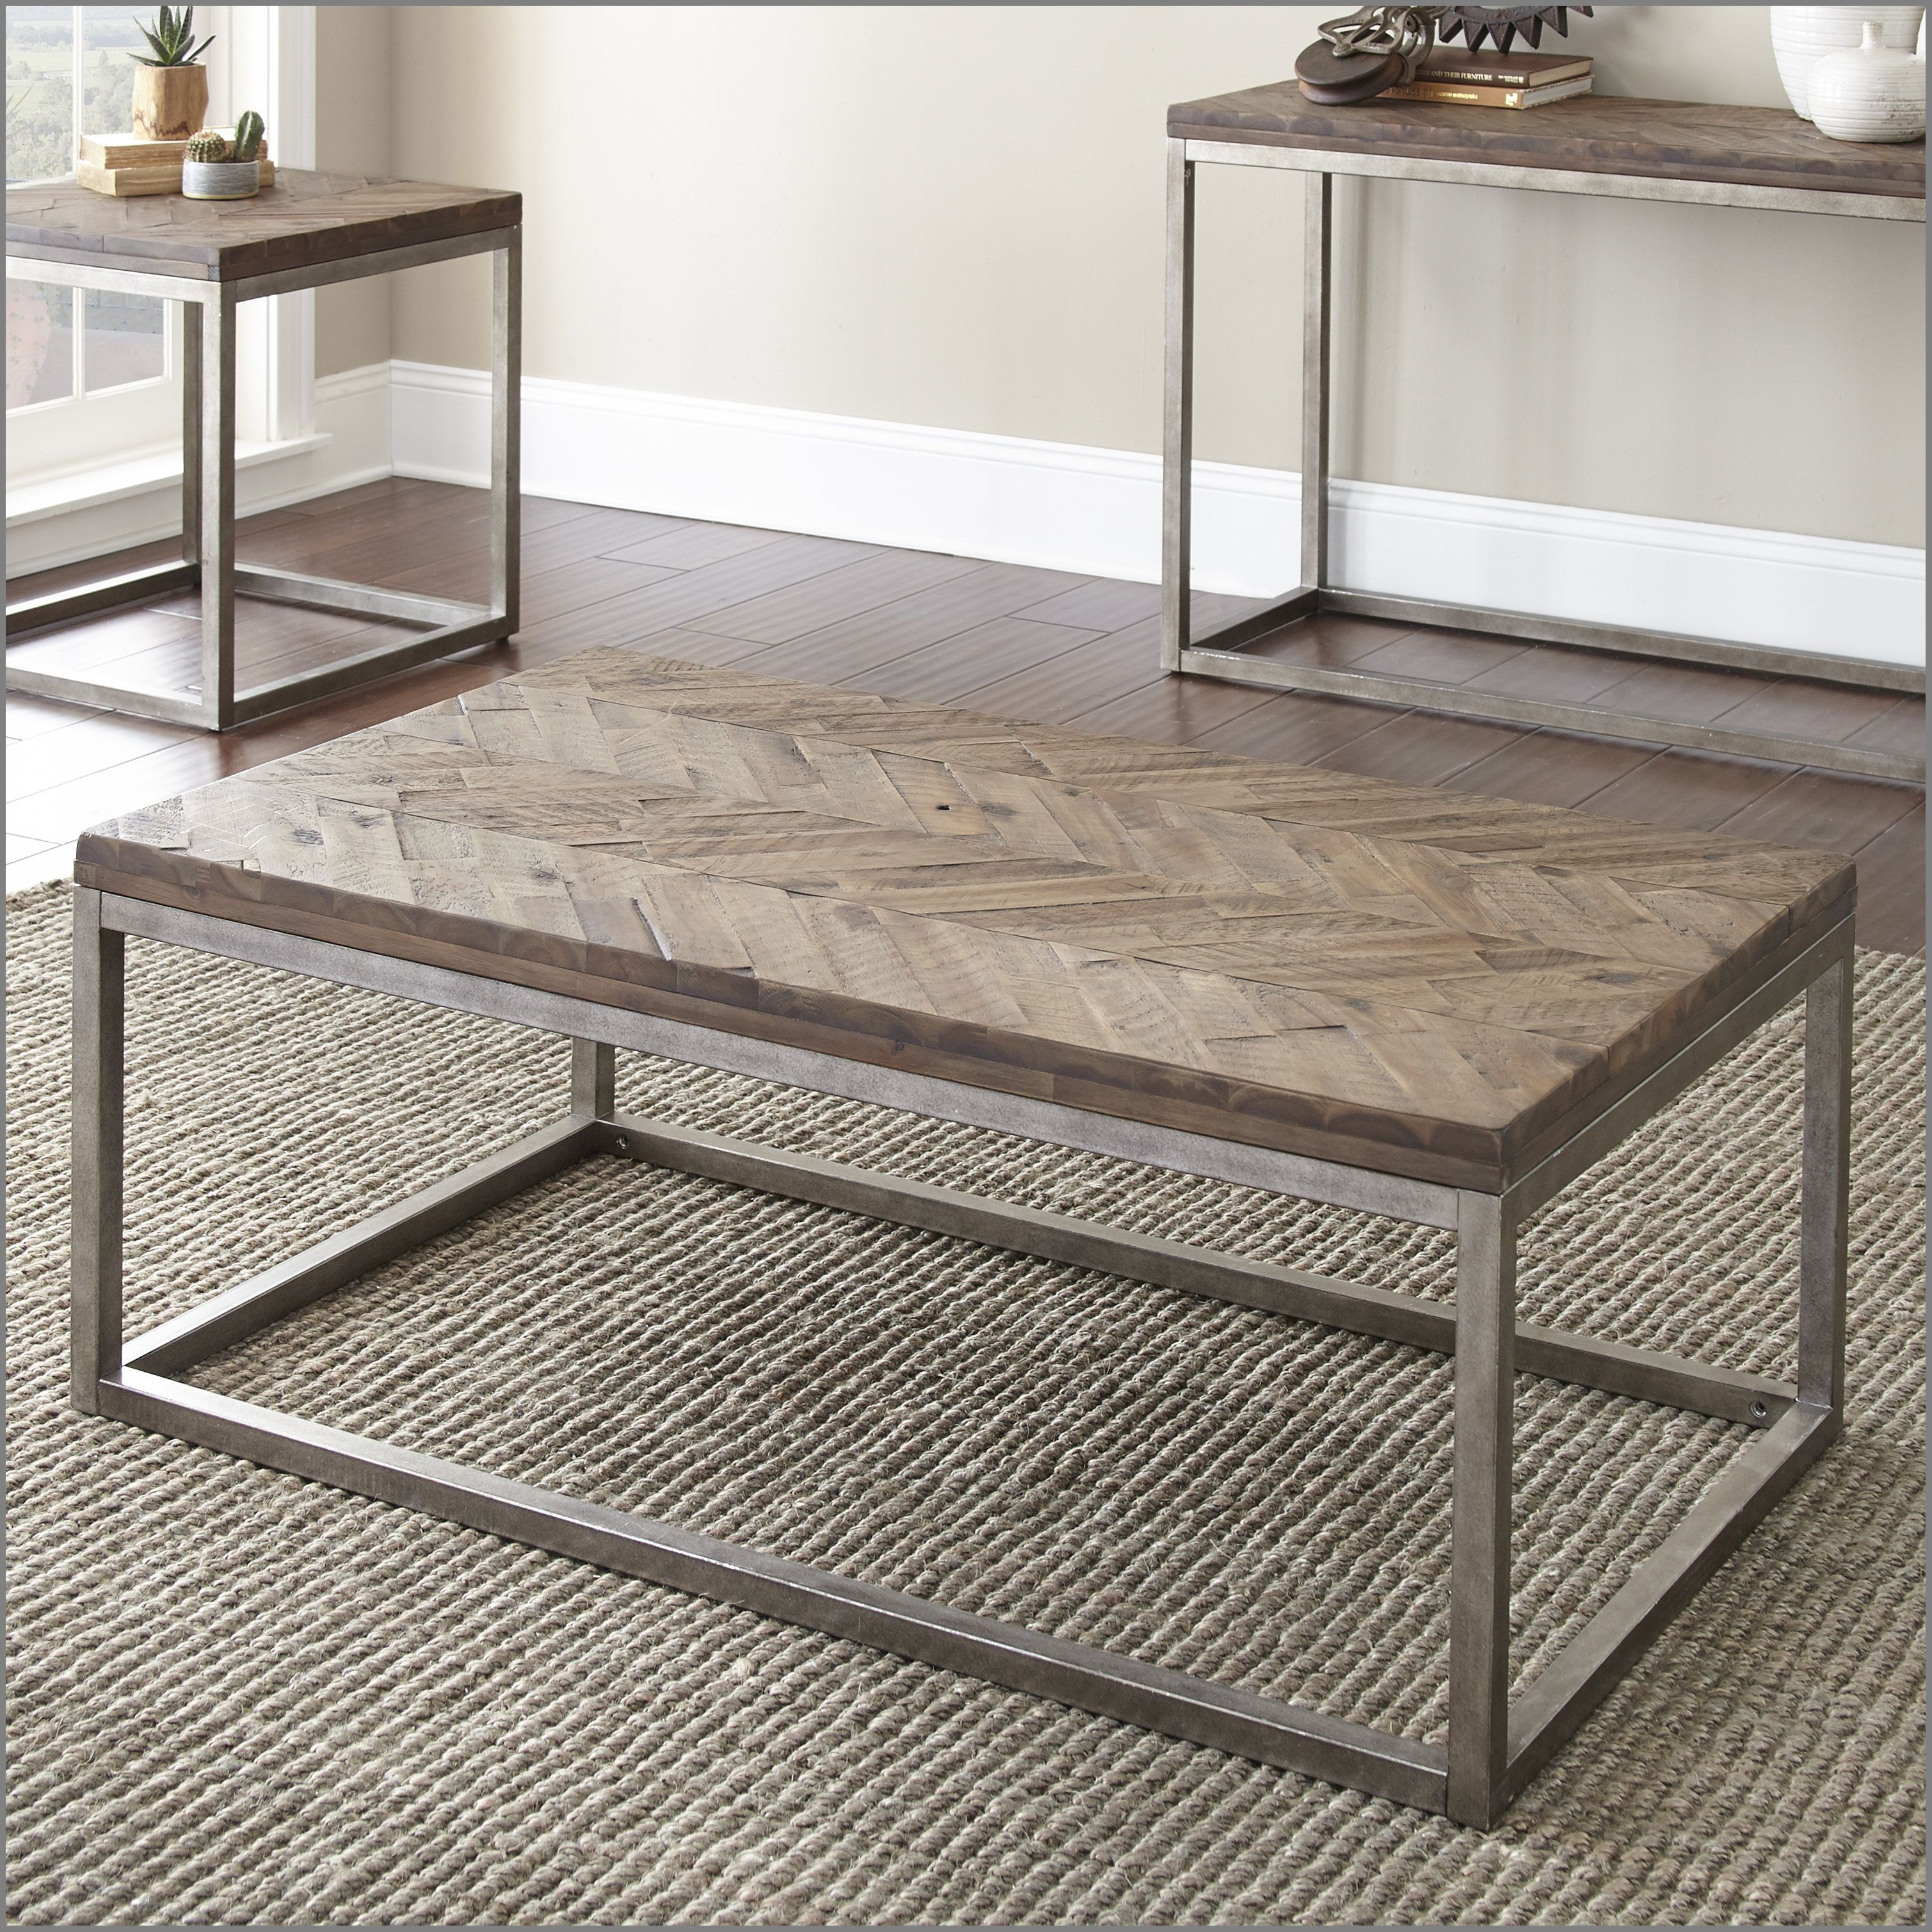 modern cooper rectangle coffee table tables accent charming laurel foundry farmhouse kenton reviews round rug wine shelf three legged rustic end set fabric placemats wood floor